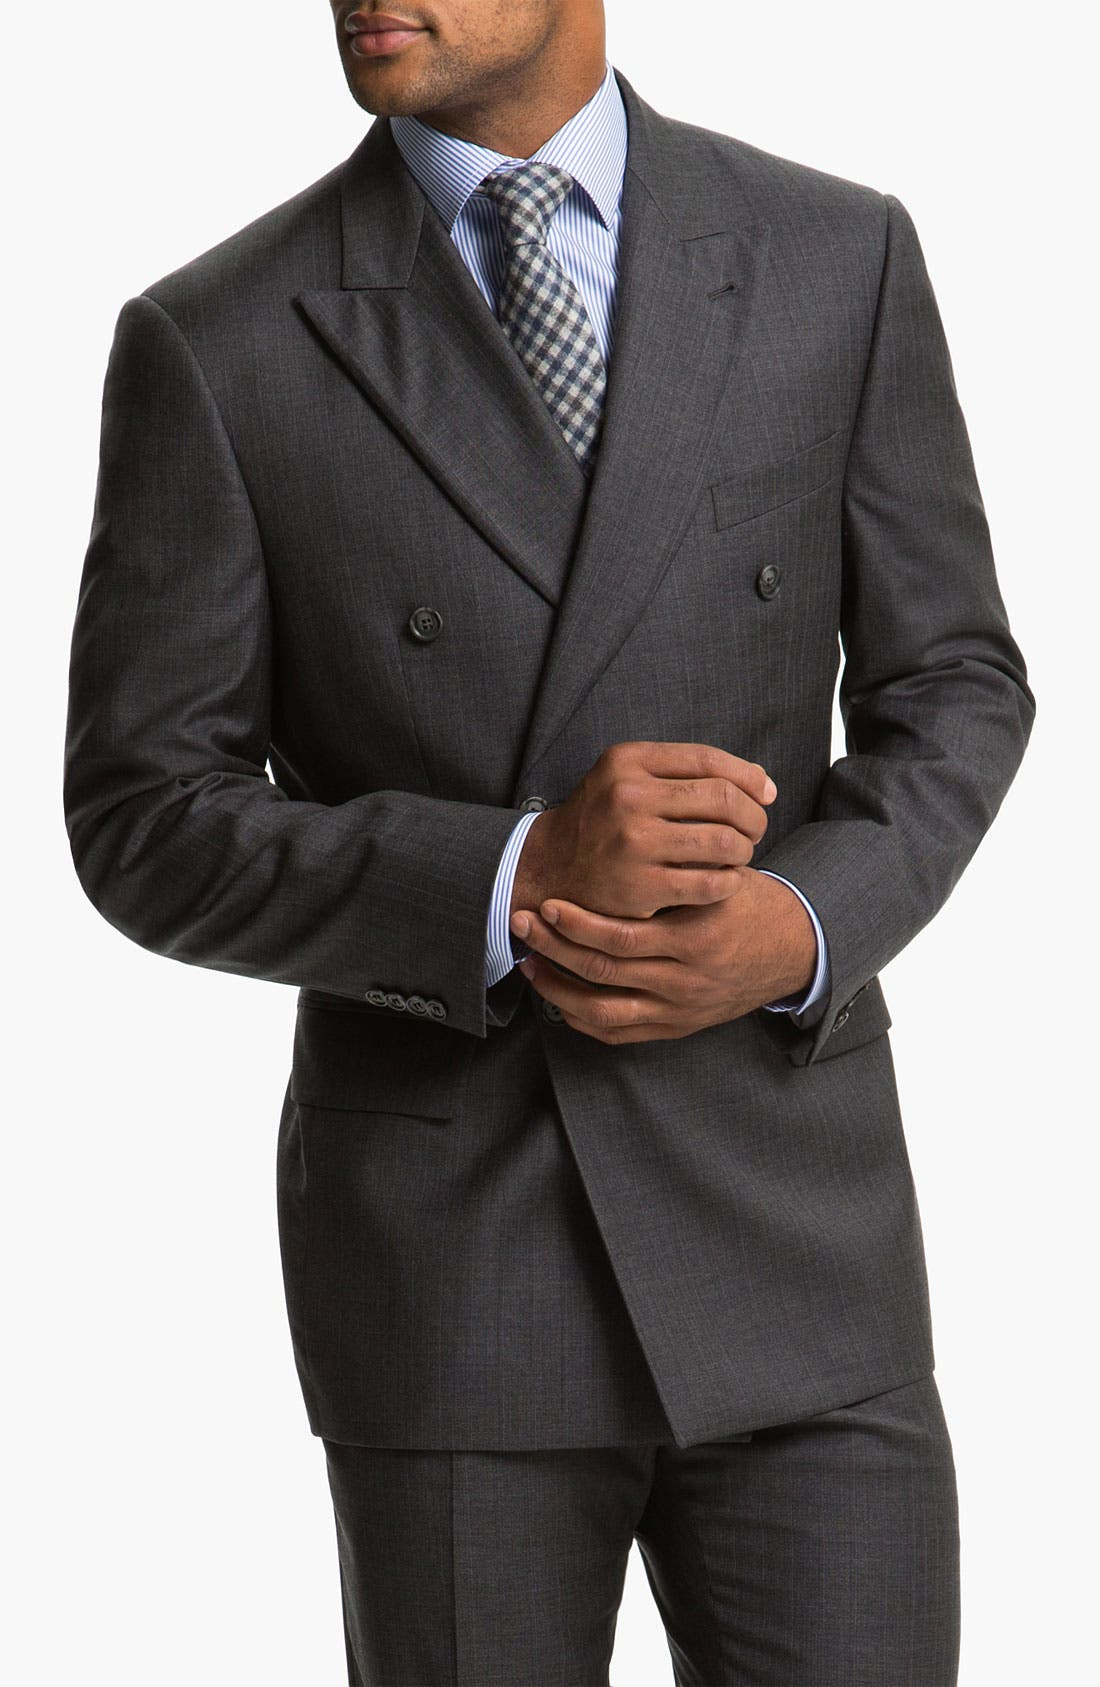 Main Image - Joseph Abboud 'Profile' Double Breasted Wool Suit